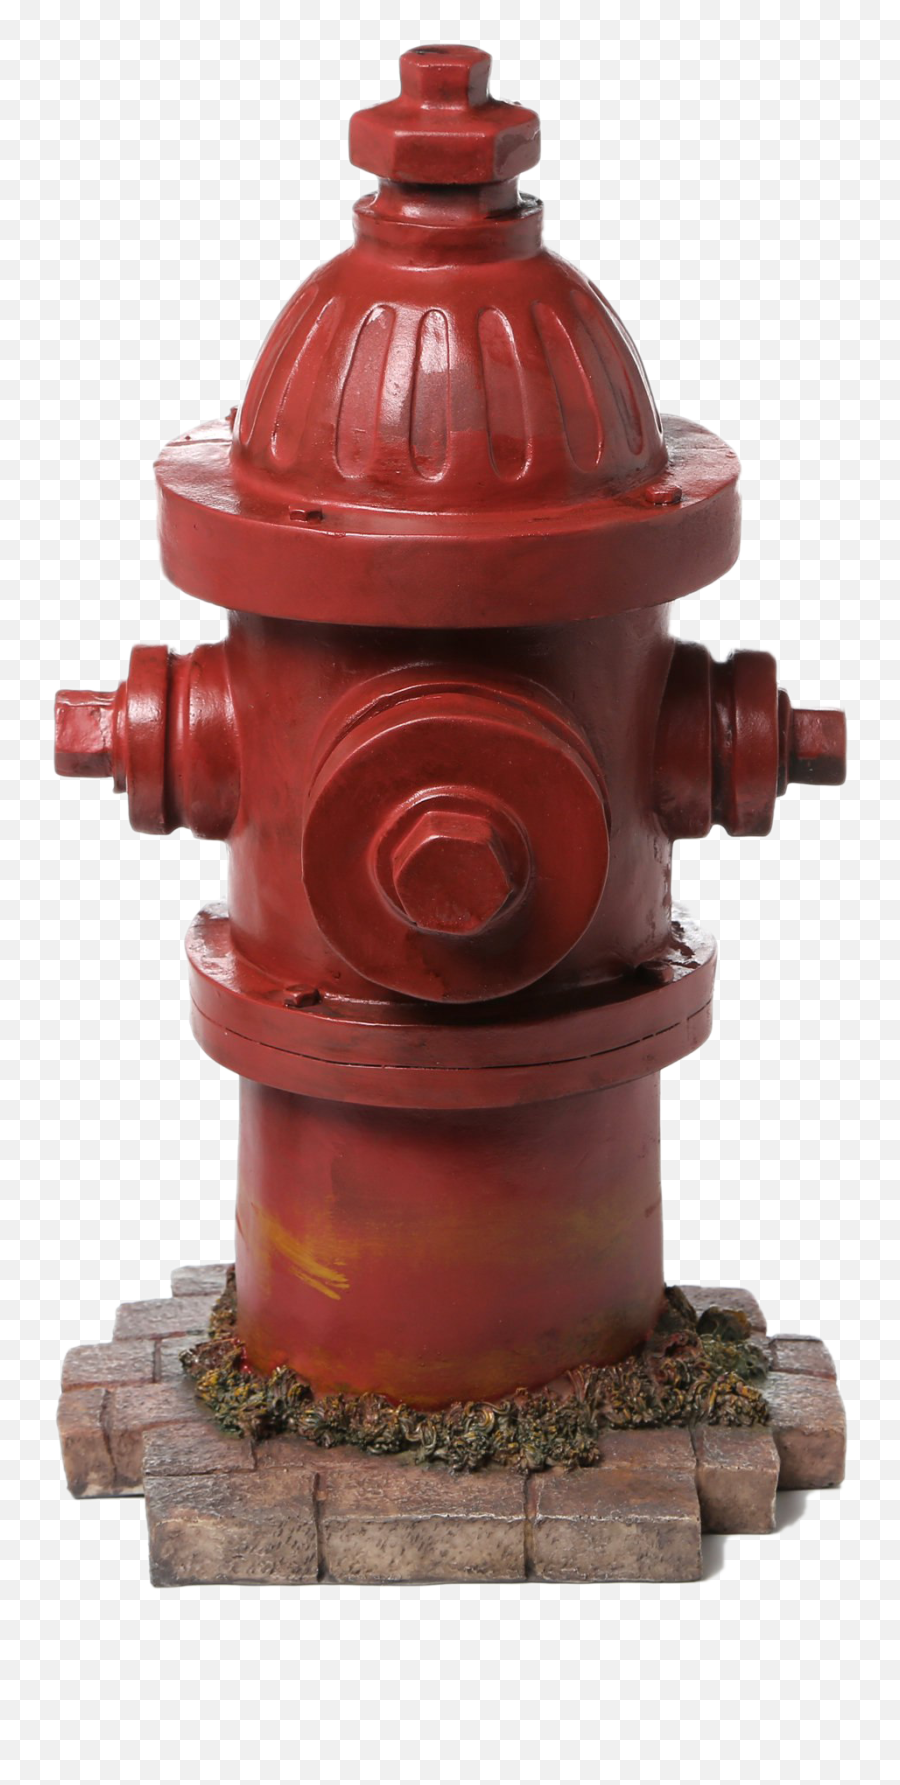 Red Fire Hydrant Transparent Background Png Play - Garden,Red Fire Png